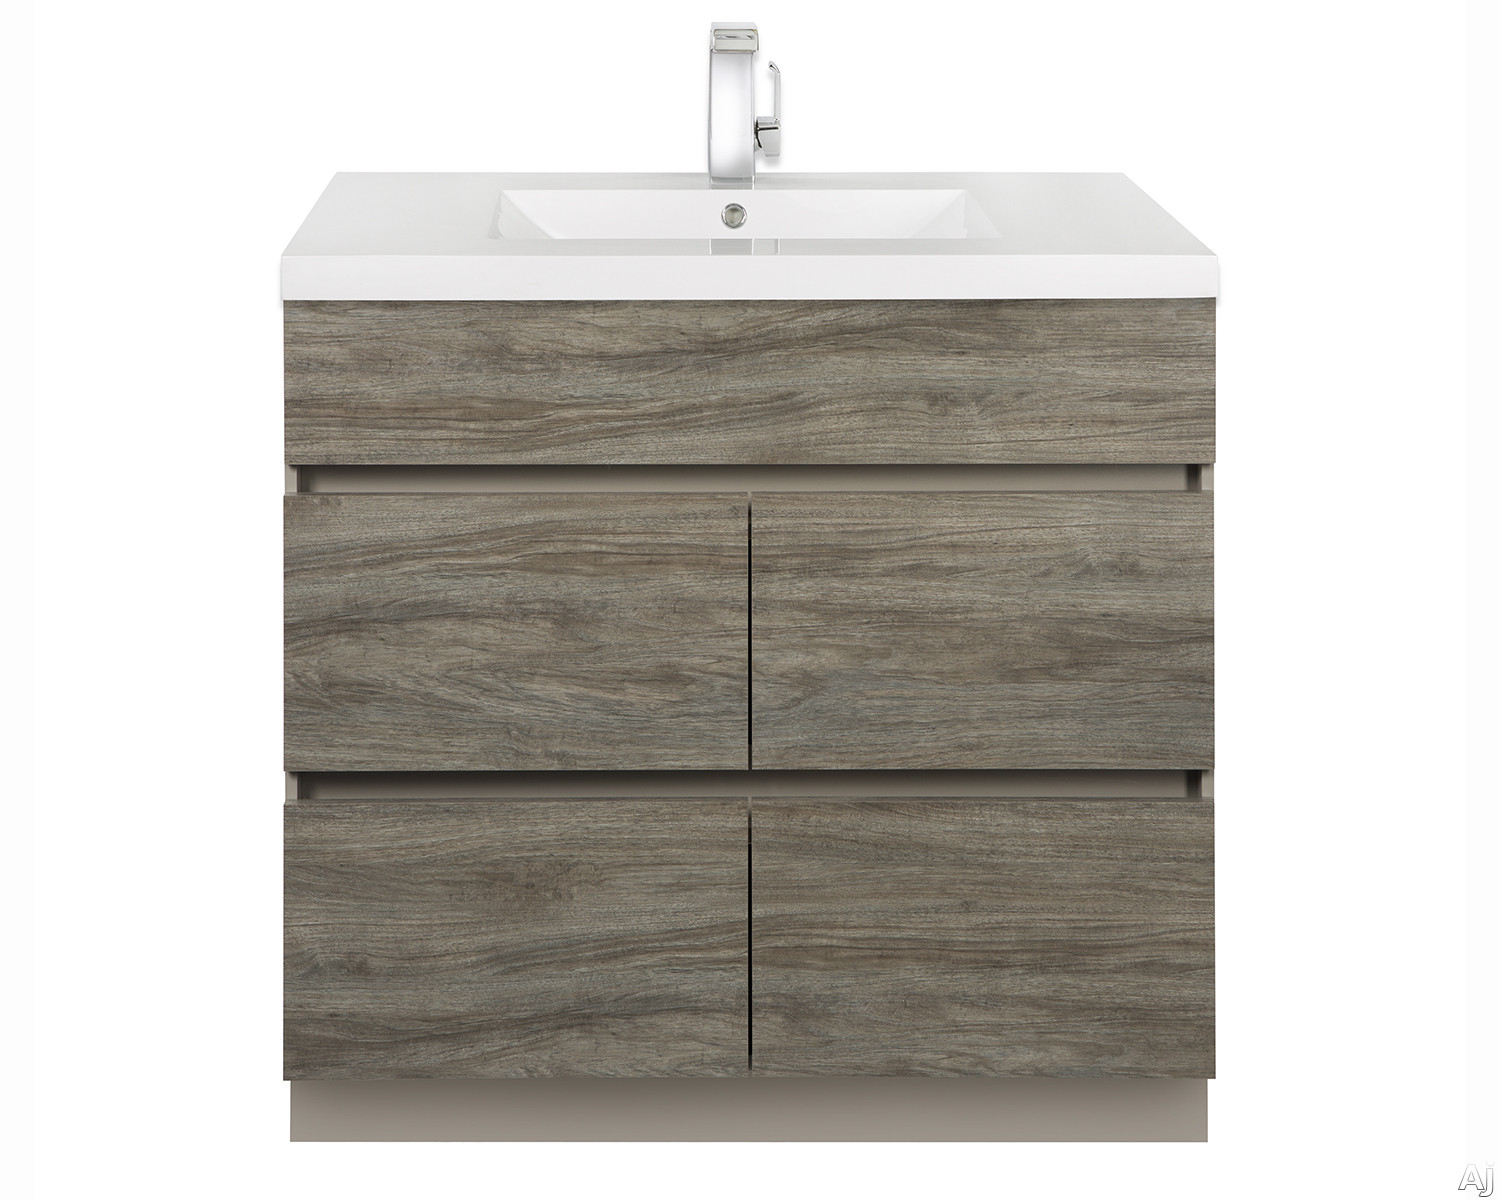 Picture of Cutler Kitchen  Bath Boardwalk BWSW36 36 Inch Single Bowl Vanity with Acrylic Top with Overflow 4 Soft Close Drawers Comfort Height and European Hardware Southwester